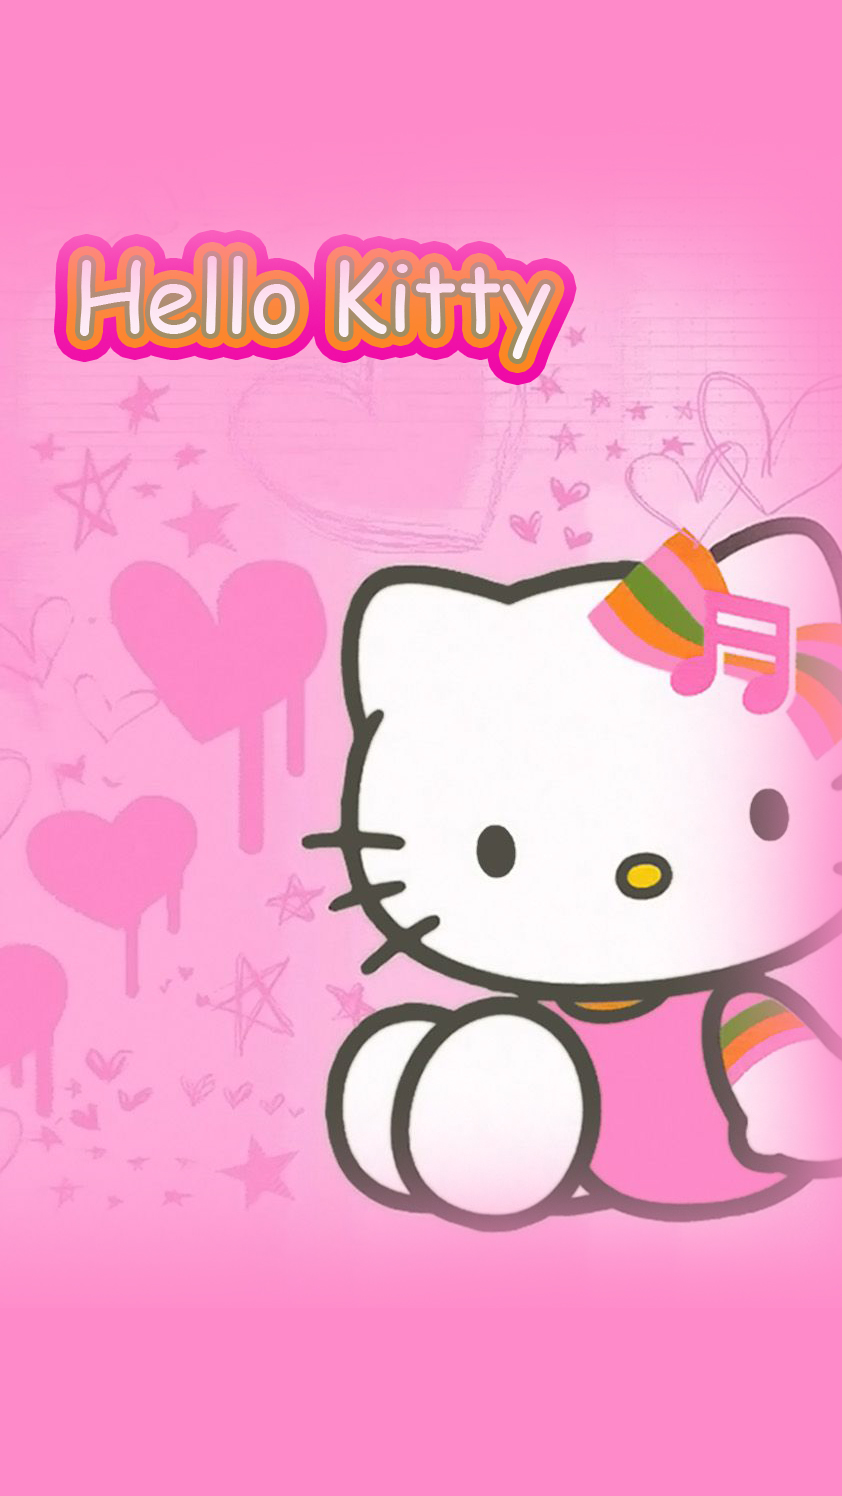 Must see Wallpaper Hello Kitty Love - wallpaper%2Bandroid%2Bhello%2Bkitty%2B%25287%2529  Best Photo Reference_979338.jpg